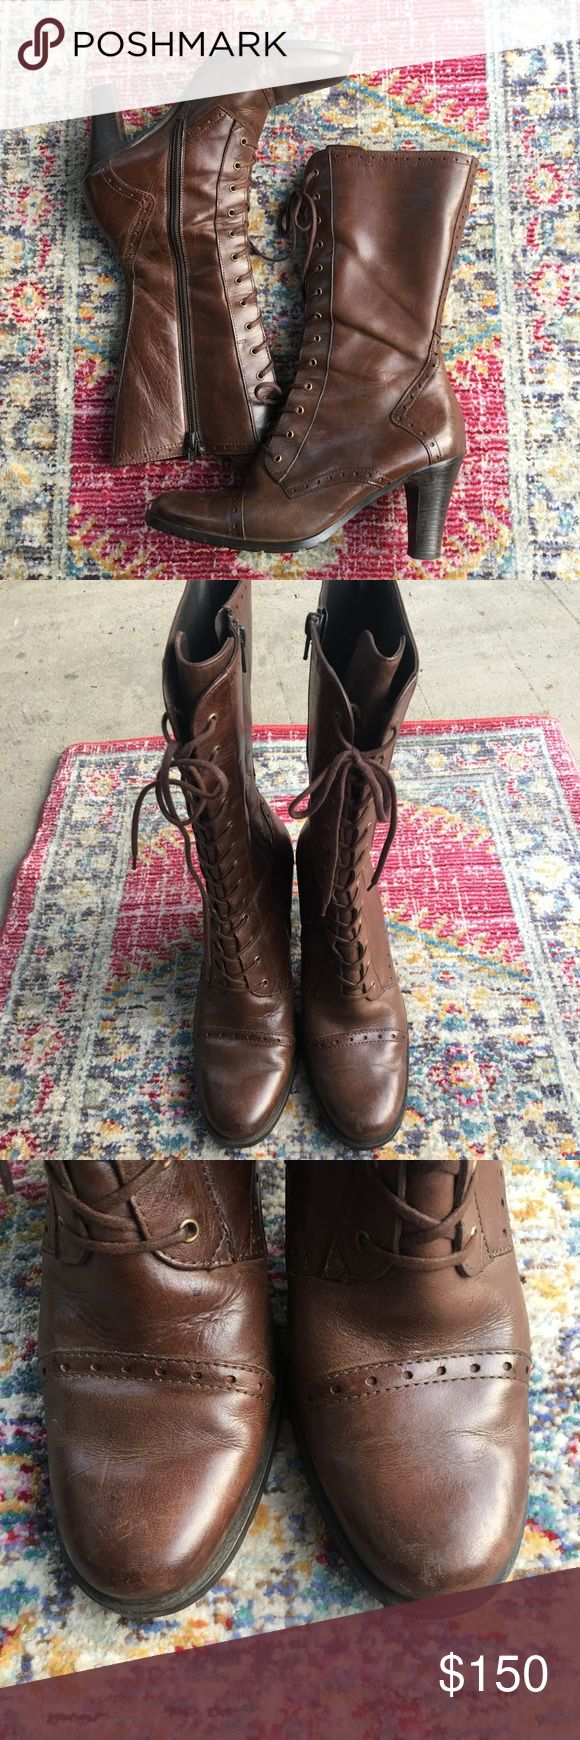 Paul Green brown lace up boots size 7 Paul Green brown lace up boots.  Paul green size is 4.5 which is equivalent to a US size 7.  Side zippers. Signs of wear at toe and heel.  No box Paul Green Shoes Heeled Boots